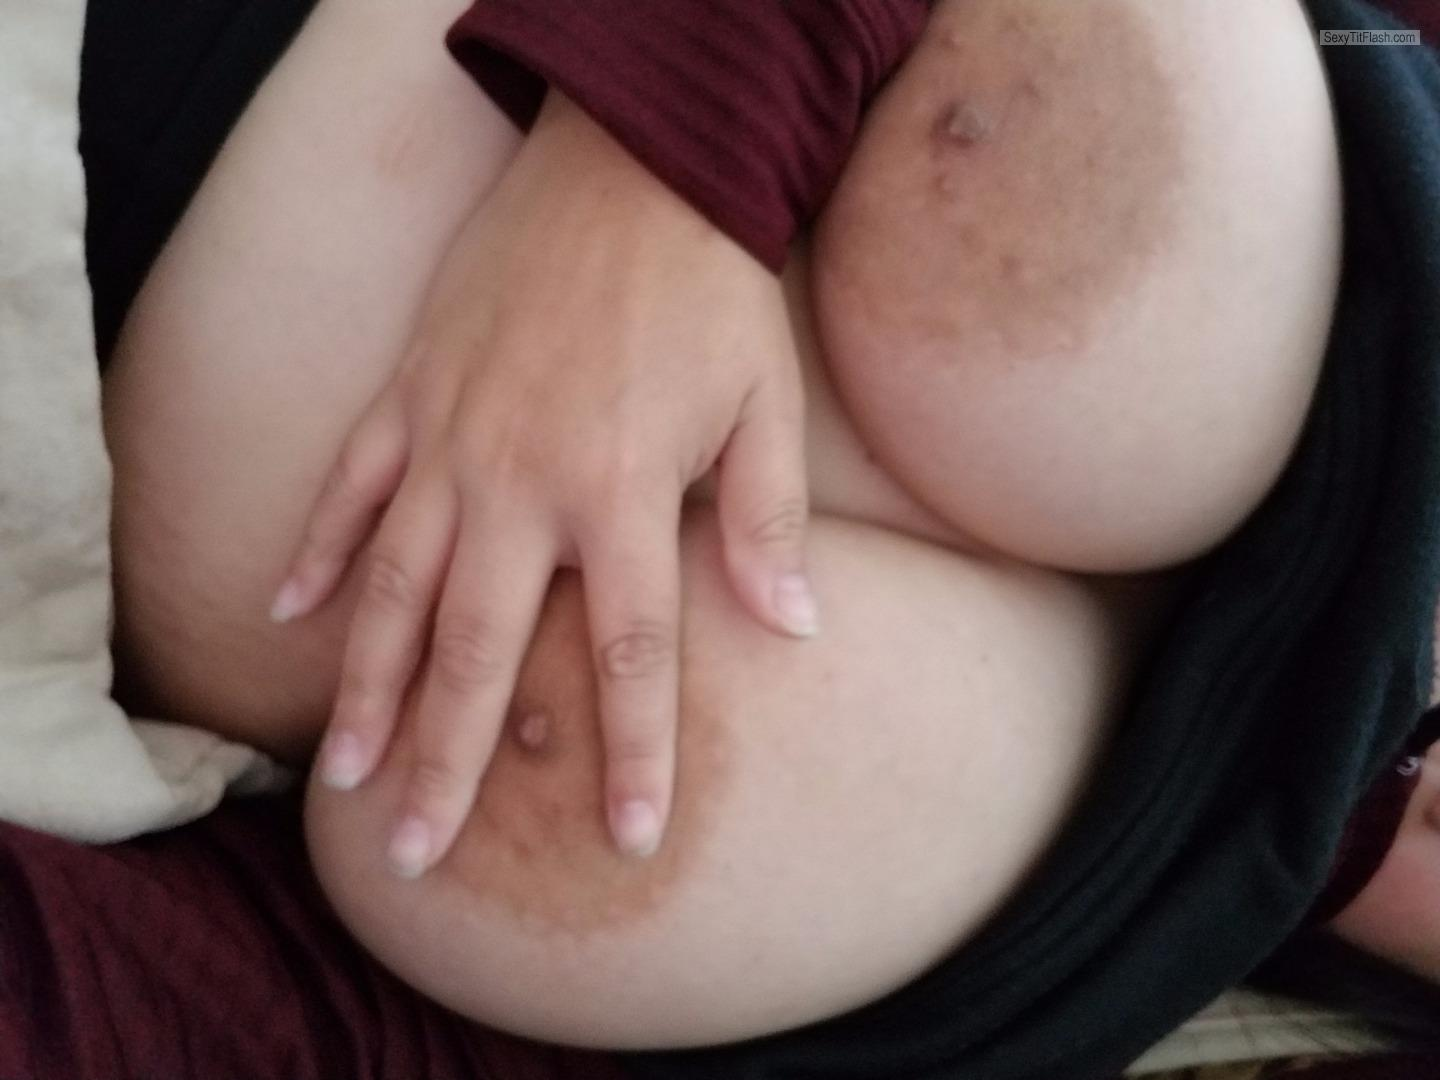 Tit Flash: My Extremely Big Tits (Selfie) - Bored Anon from United States